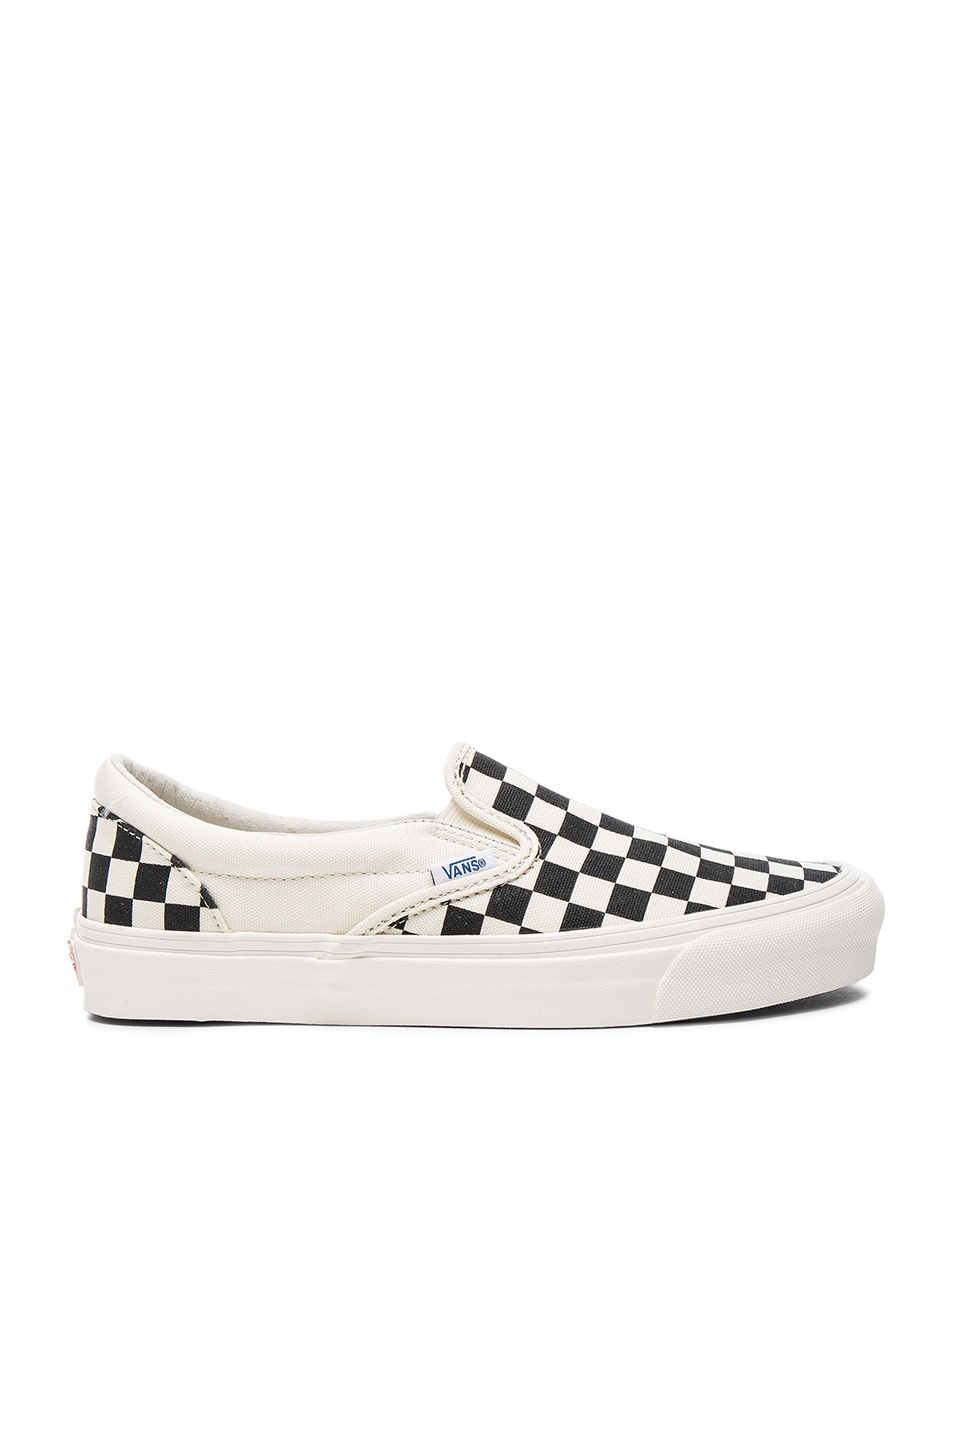 8b46c3be7b Image 1 of Vans Vault OG Classic Canvas Slip On LX in Black   White  Checkerboard